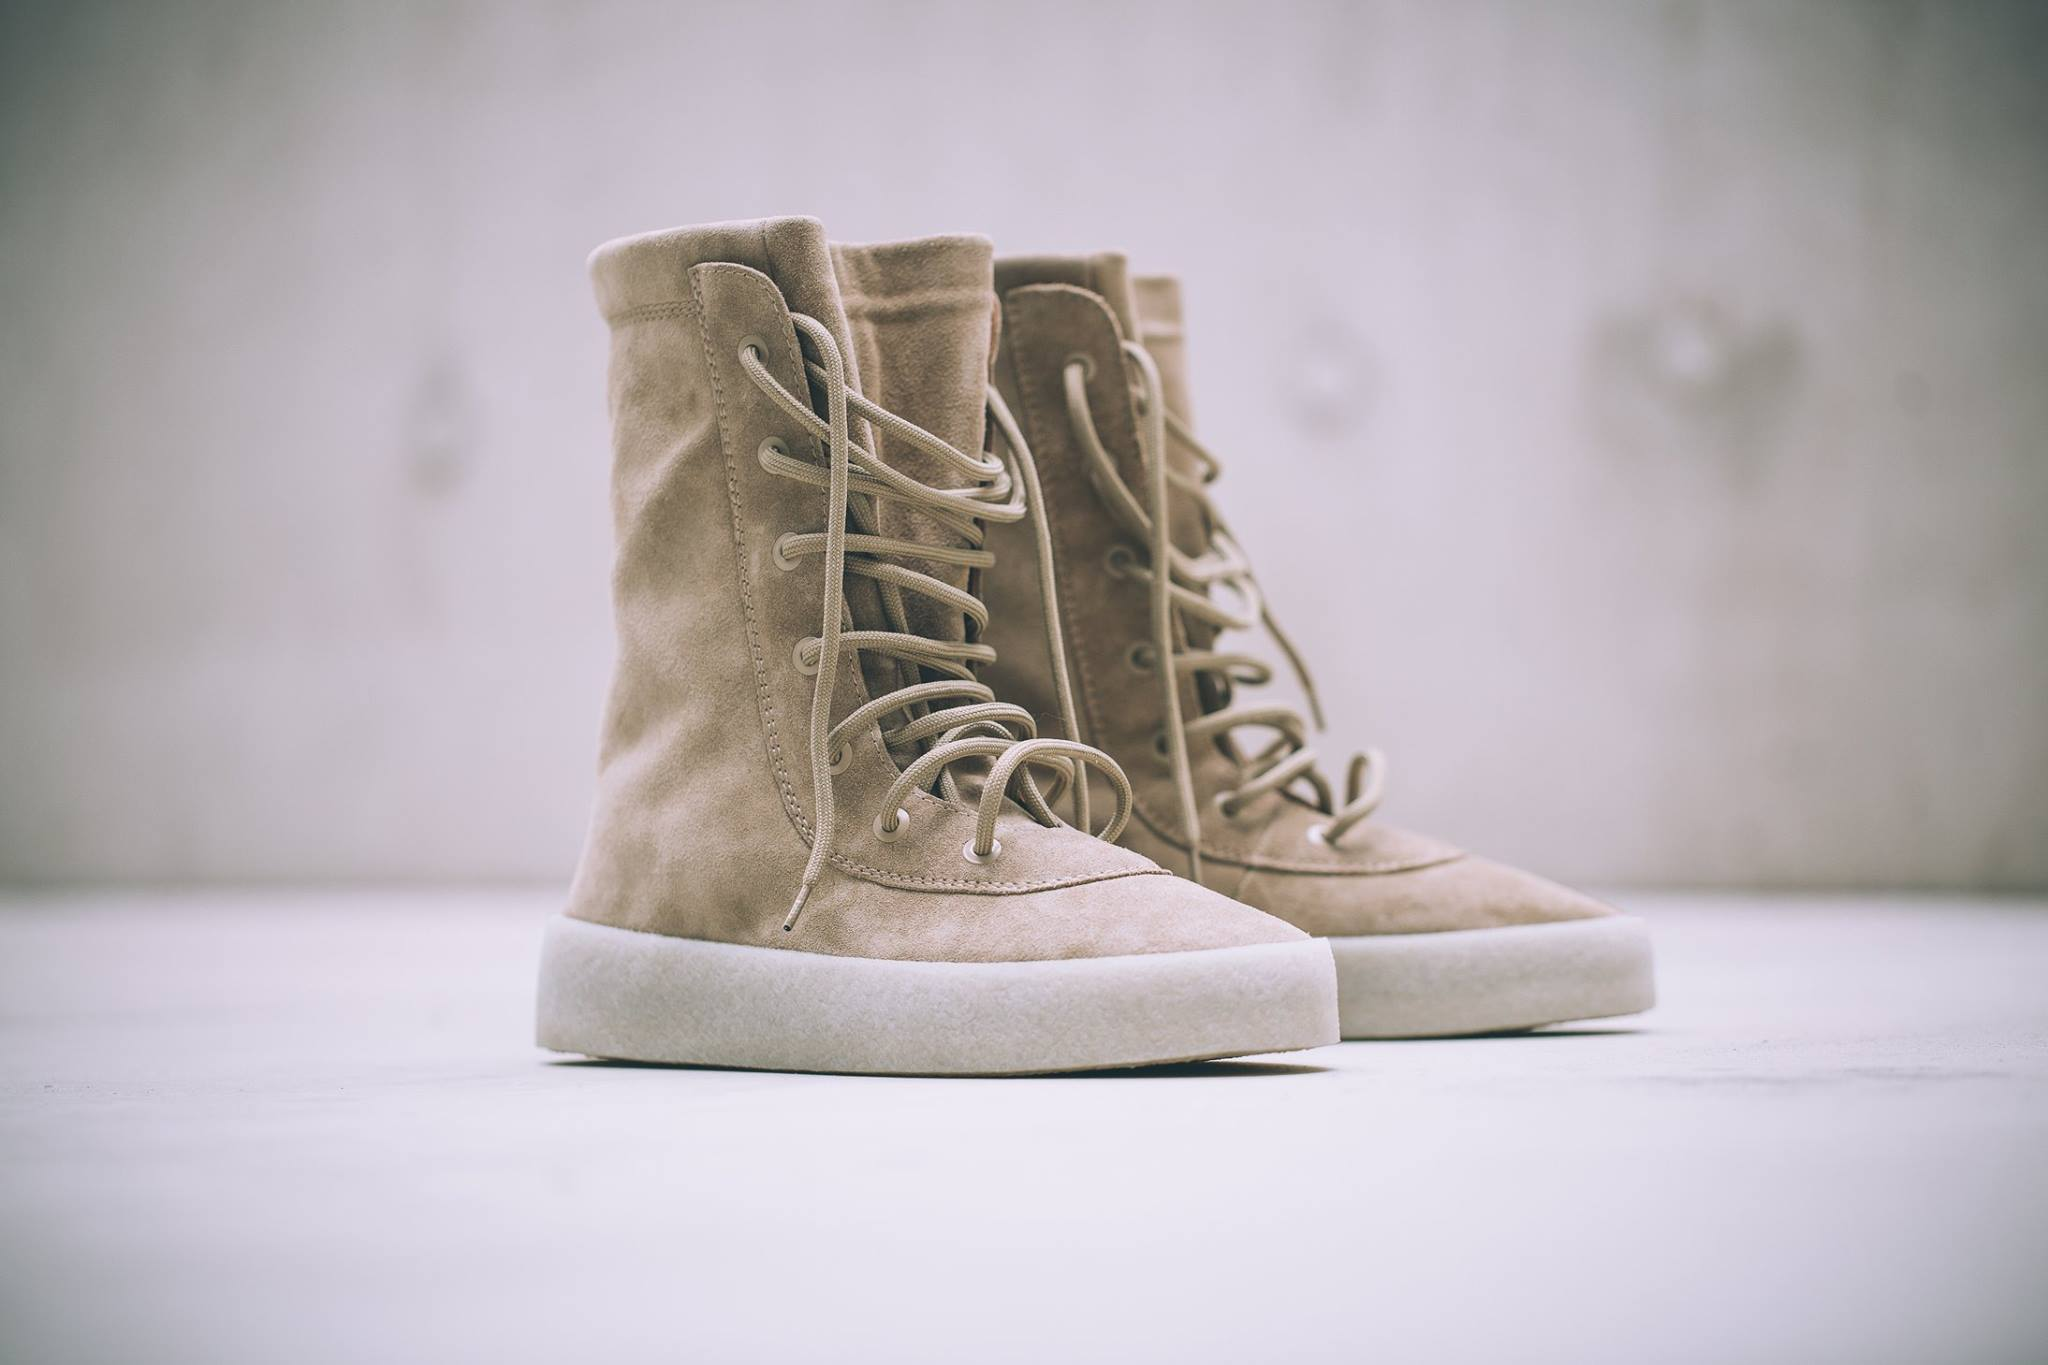 688b0addb27 YEEZY SEASON 2 CREPE BOOT · FreshnUp · Online Store Powered by Storenvy